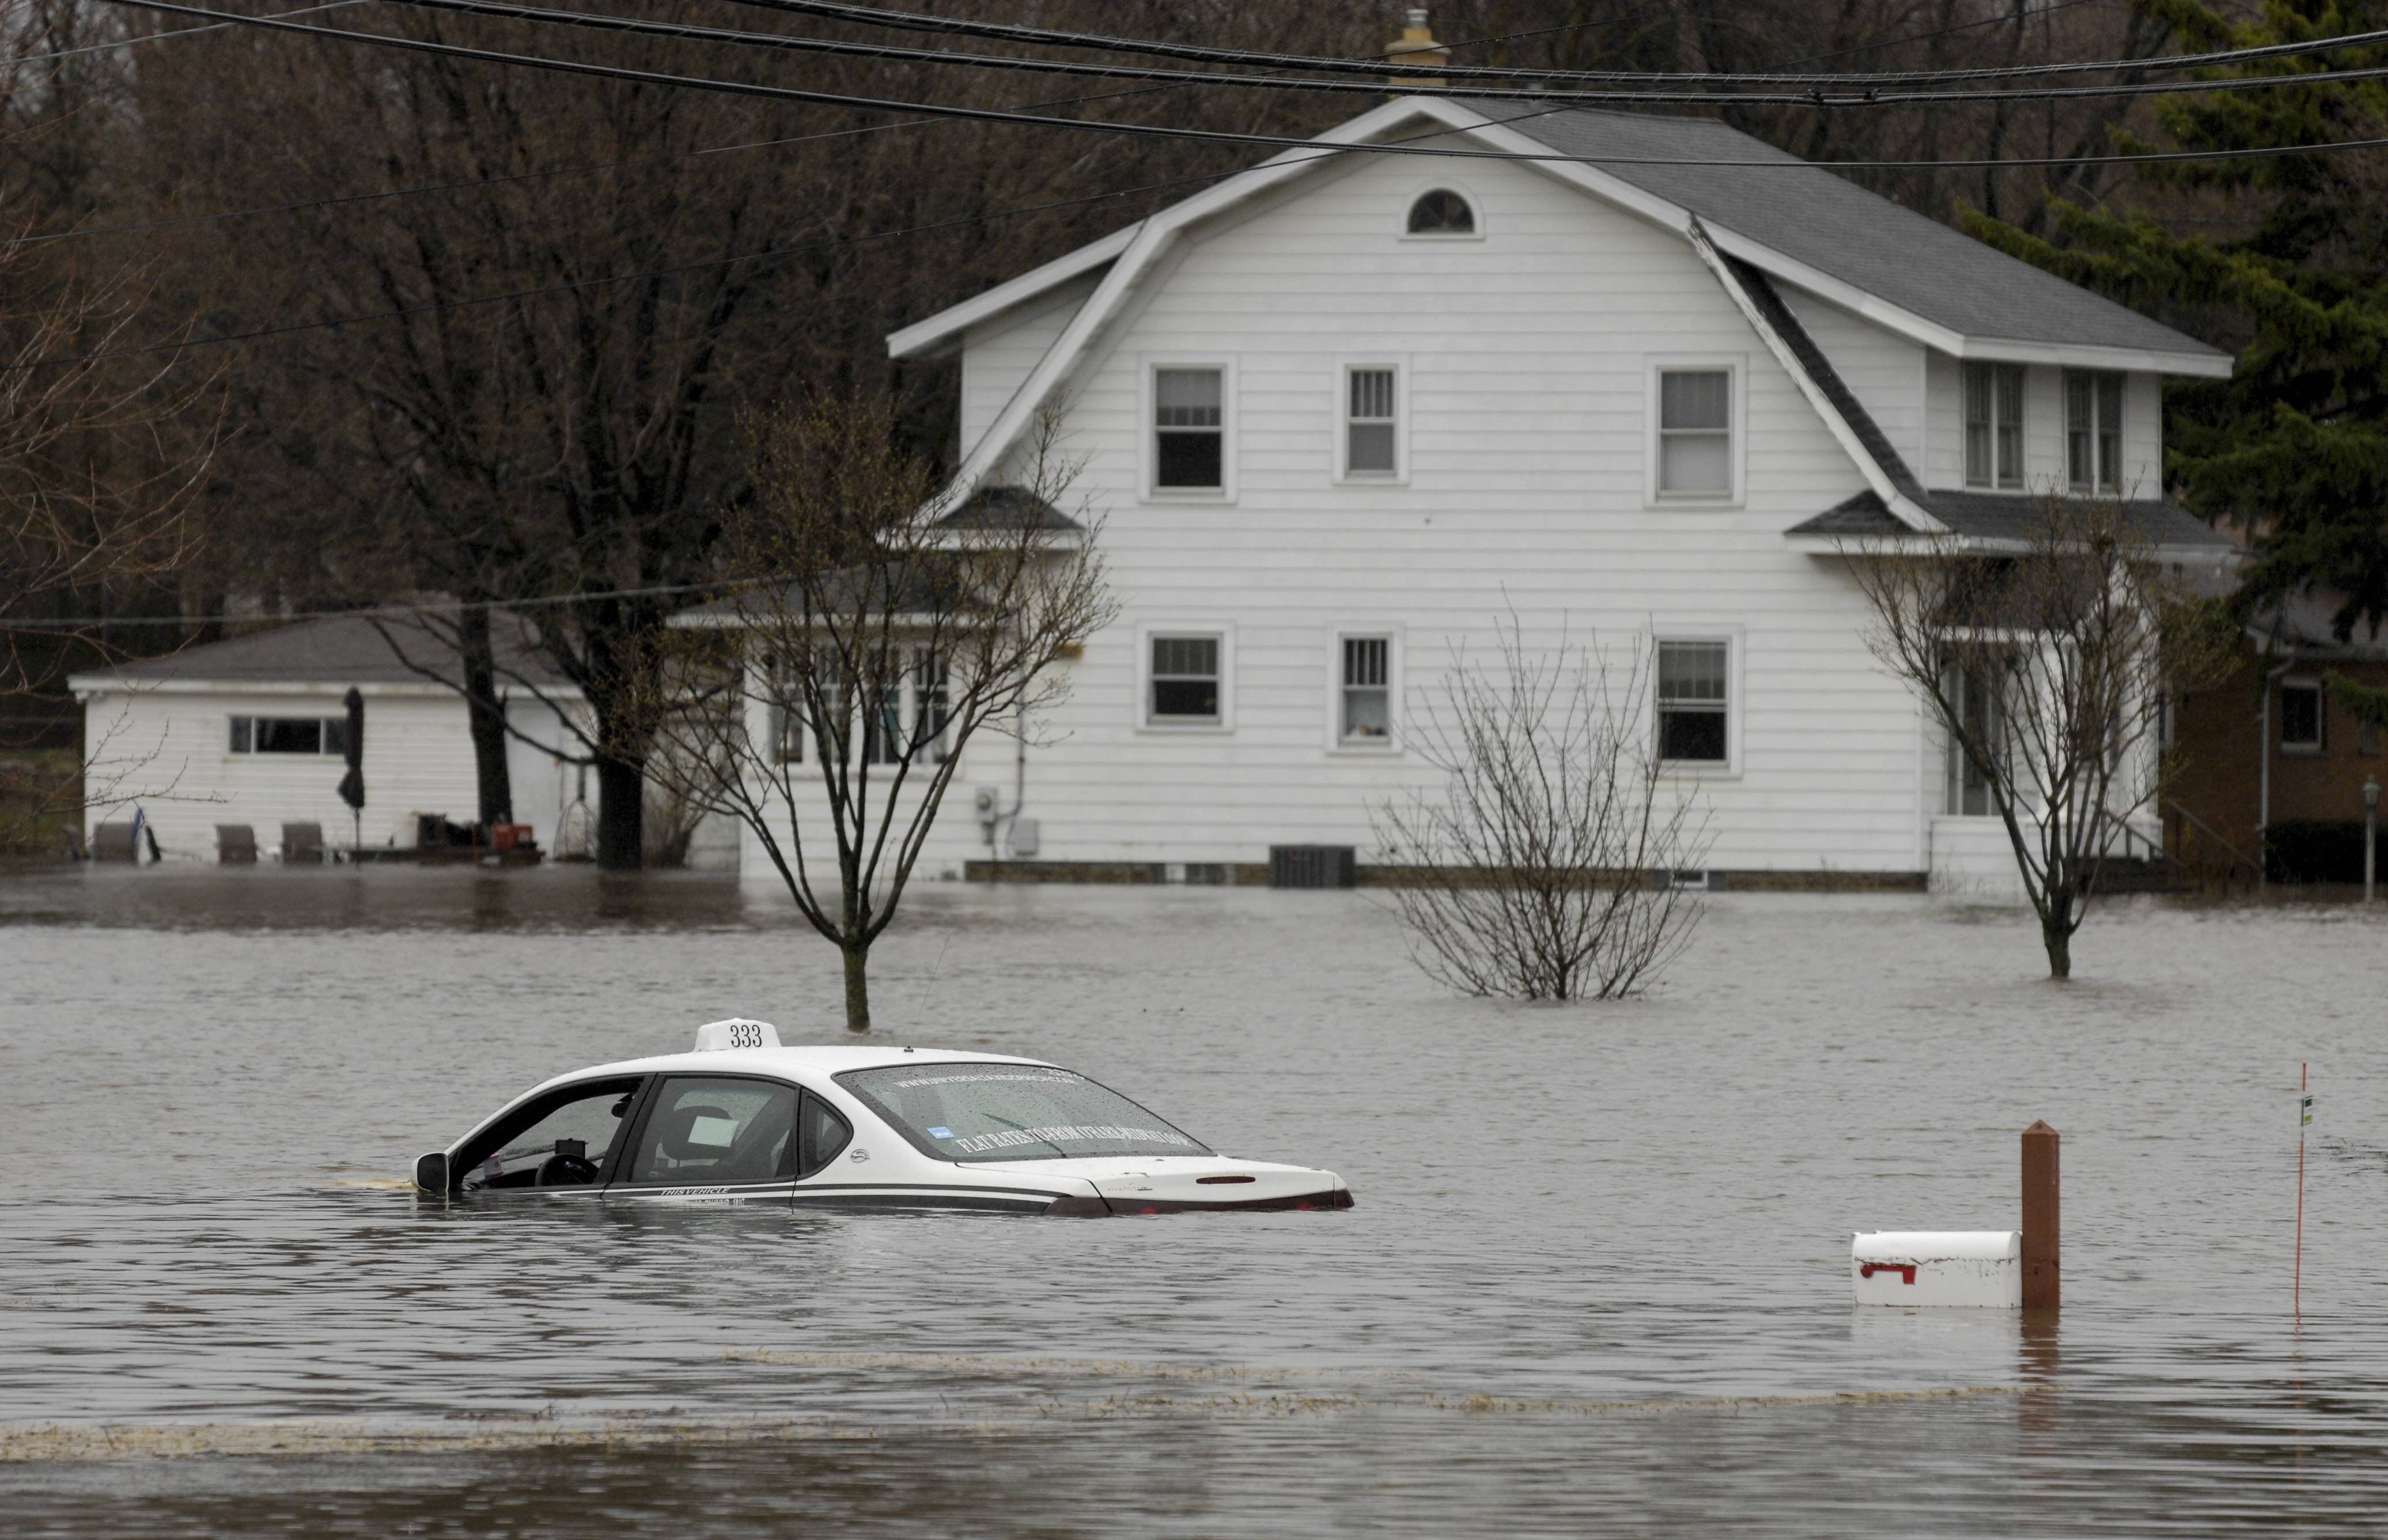 A taxi sits flooded up to the windows along Finley Road  near Charles Lane in Lombard Thursday.